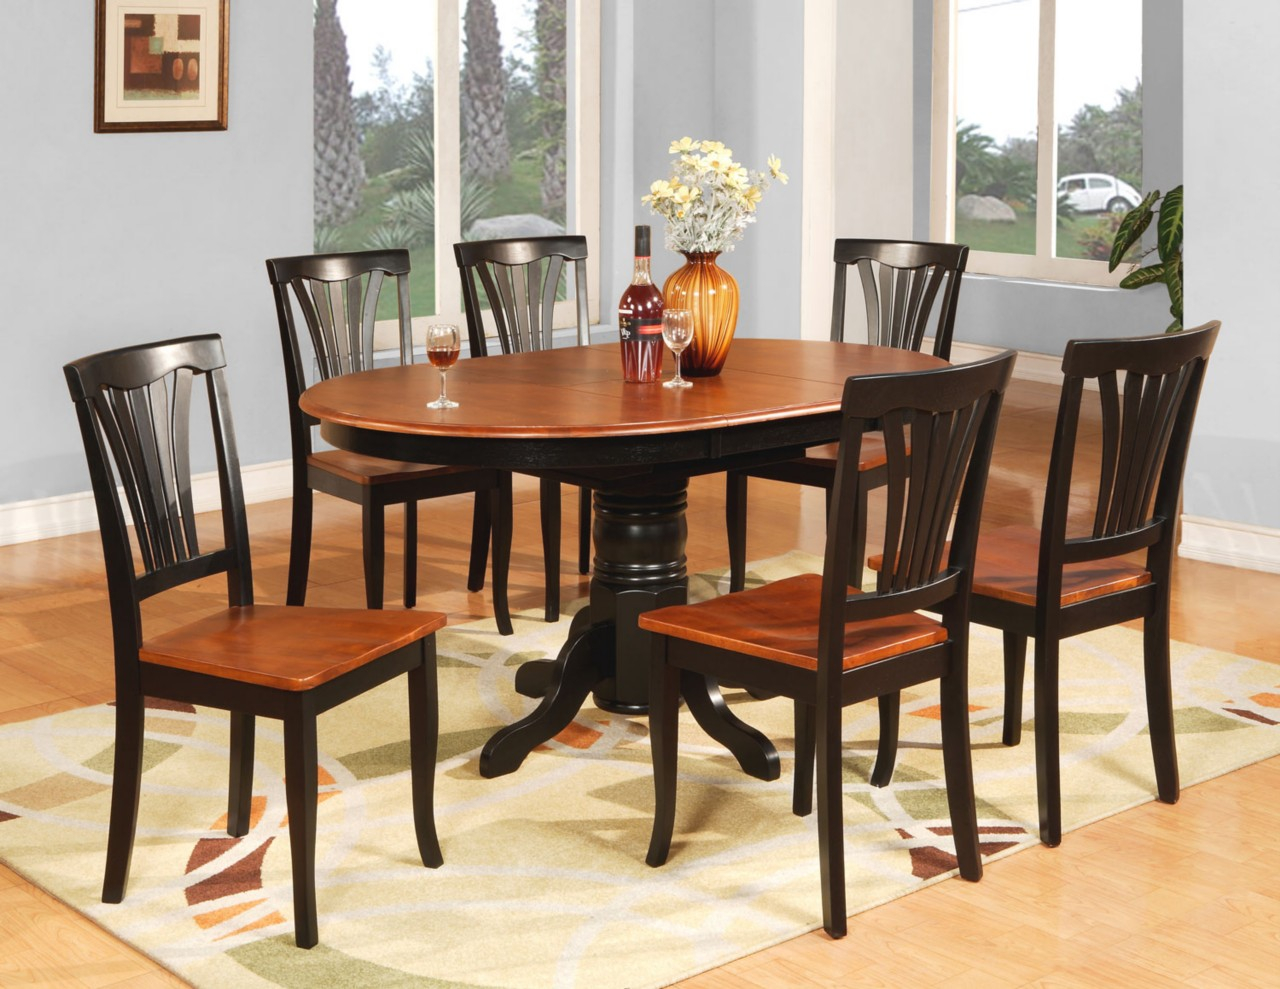 Round Dining Room Table Seats 12 Round Dining Room Table That Seats 12 Dining Table Dining Table